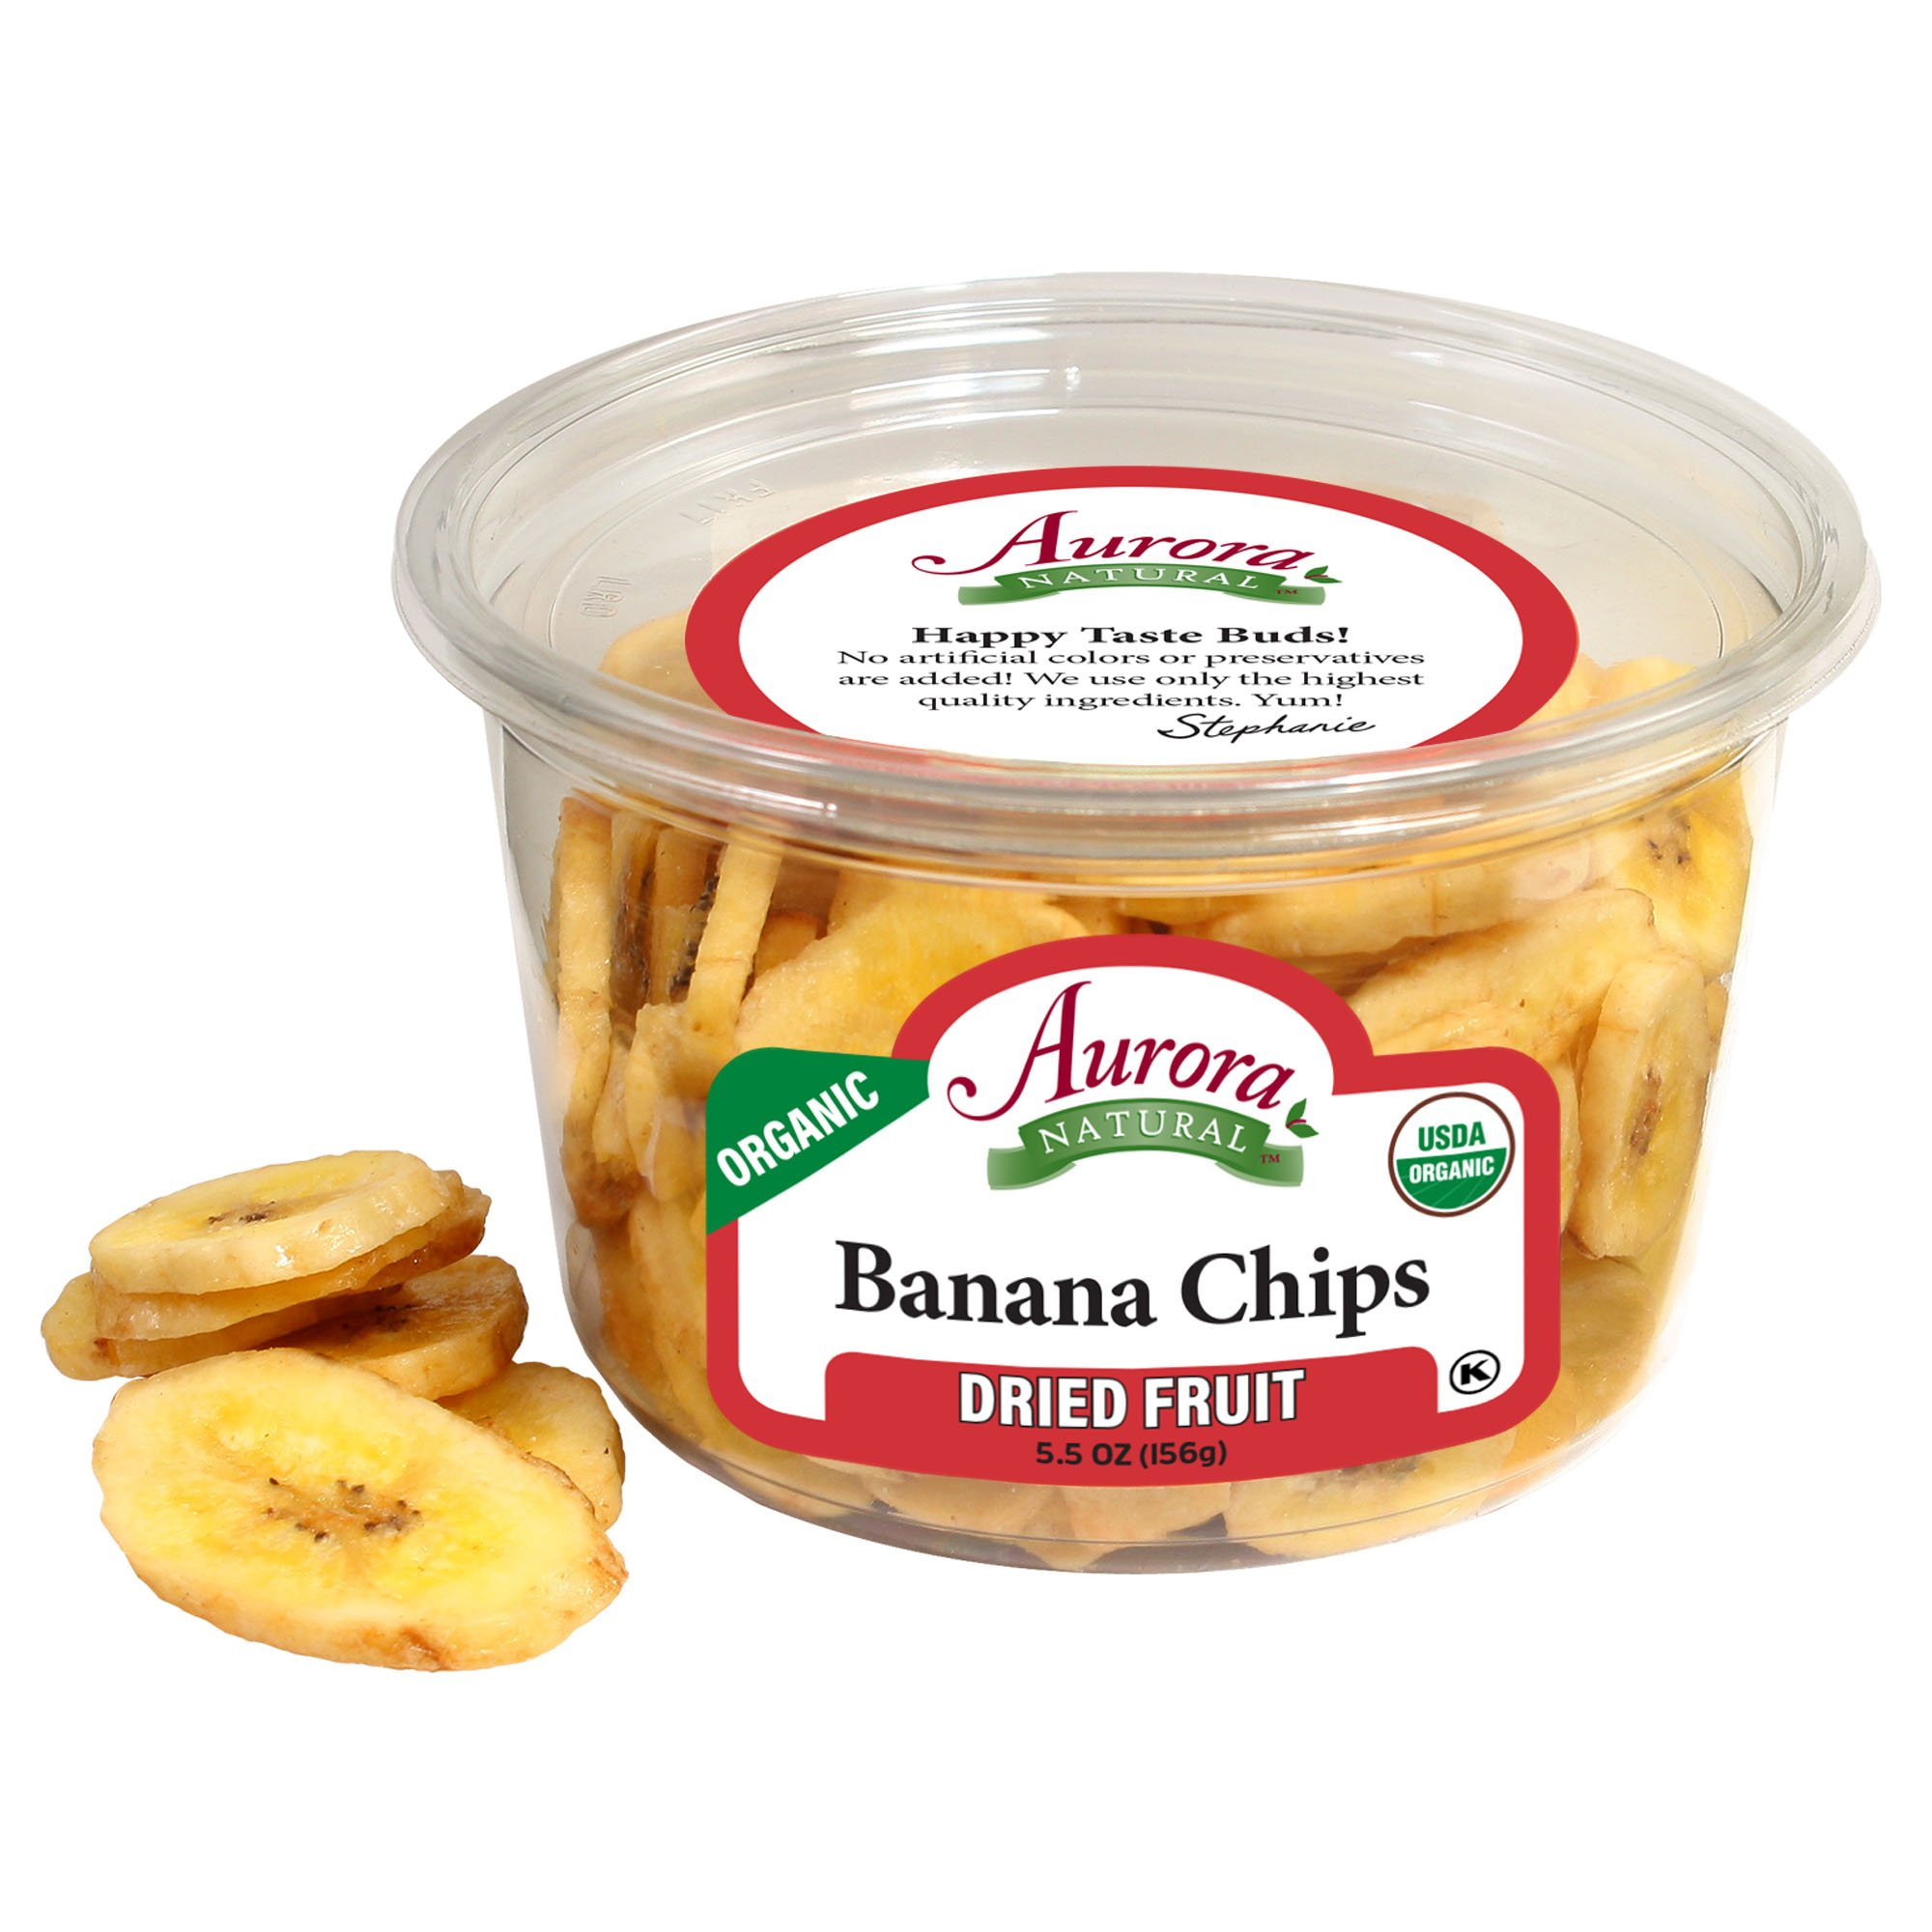 Aurora Natural Products Organic Banana Chips, 5.5 Ounce (Pack of 12) by Aurora Natural (Image #1)